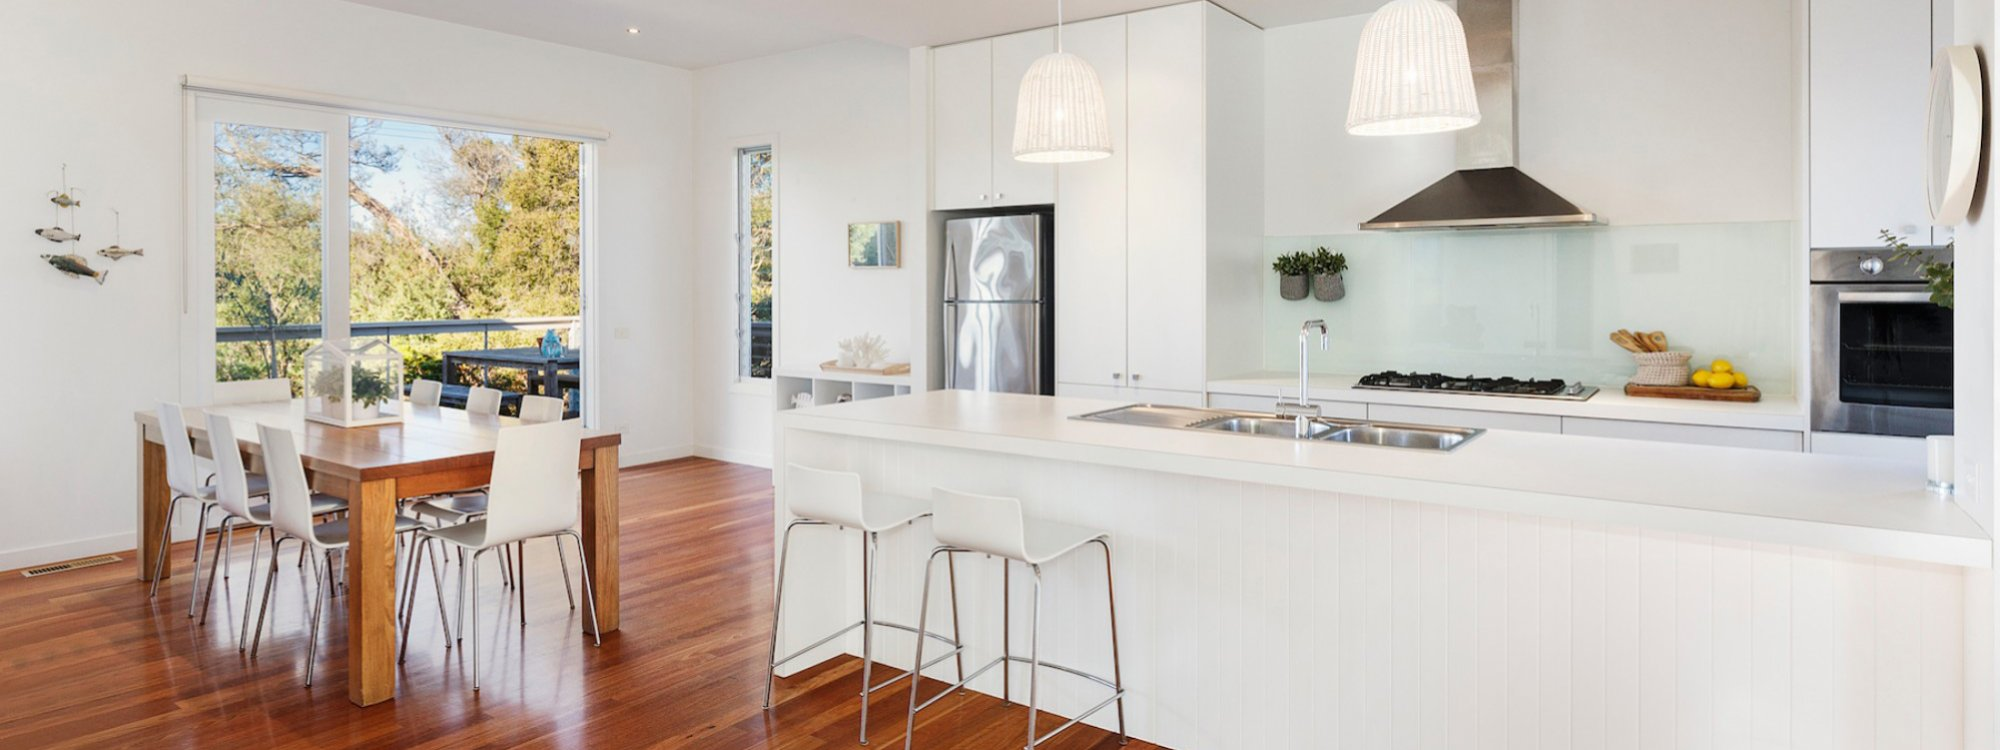 Queen Adelaide - Blairgowrie - Kitchen and Dining